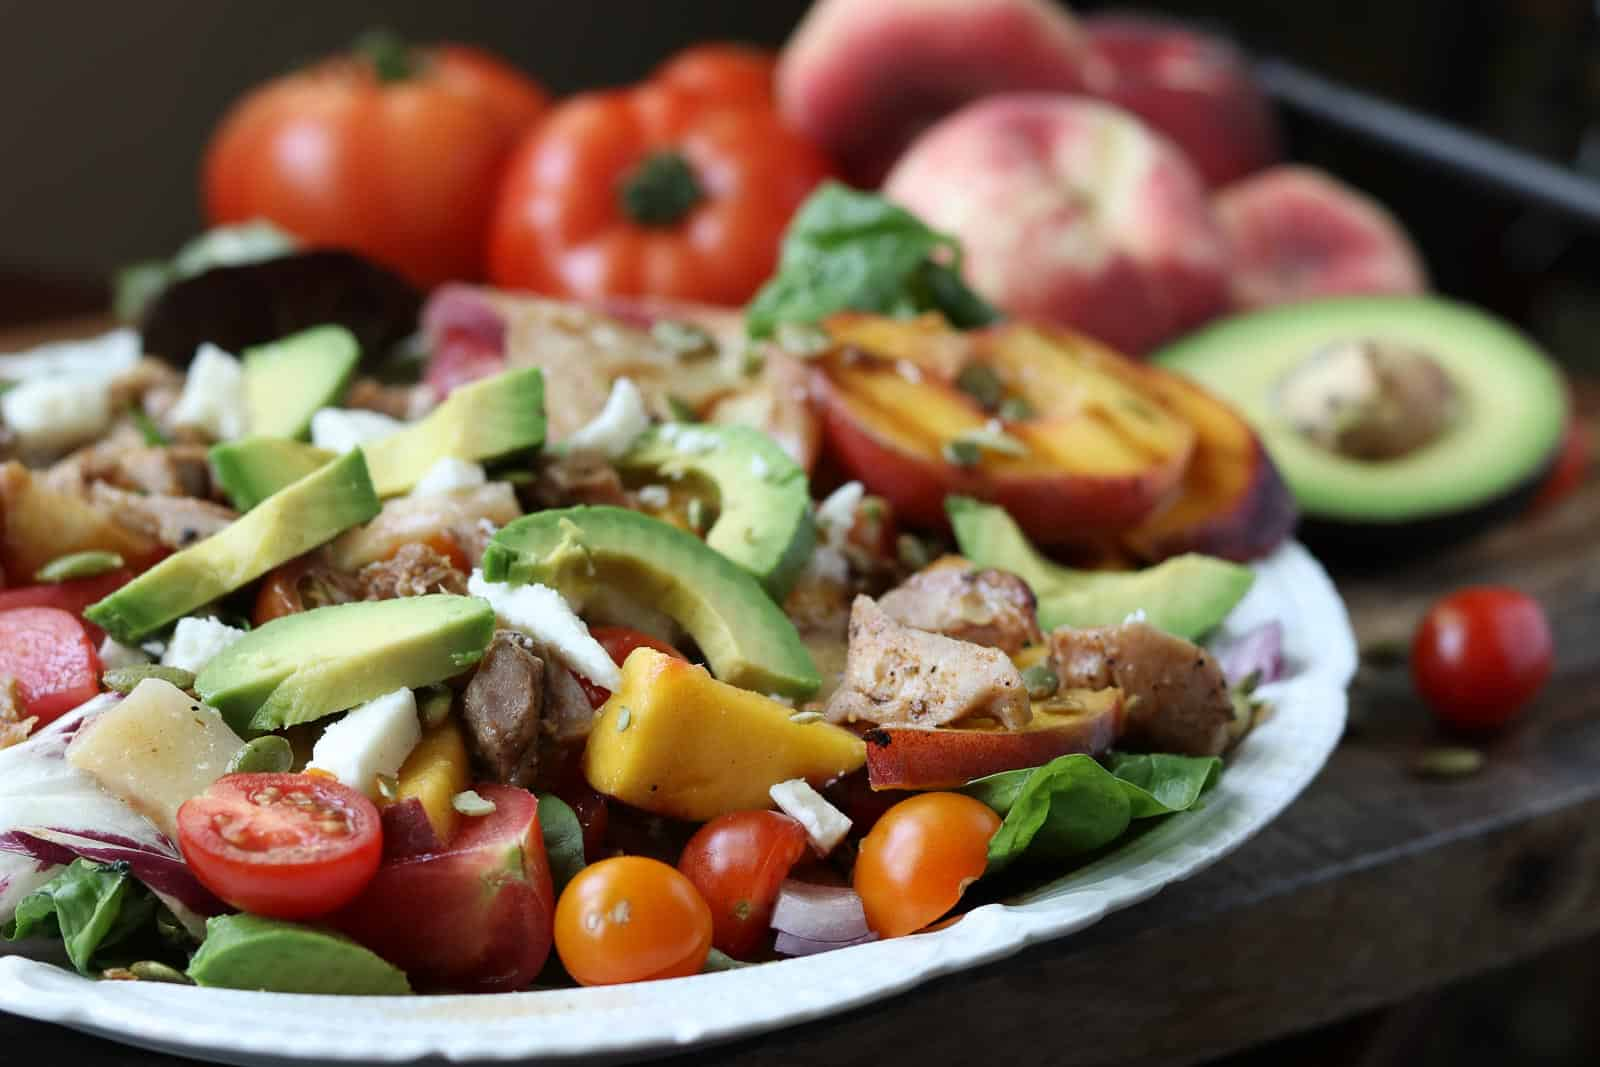 Summer Chicken Salad with fresh tomatoes, grilled peaches, avocados, pumpkin seeds on a white plate with tomatoes, peaches, avocados in the background